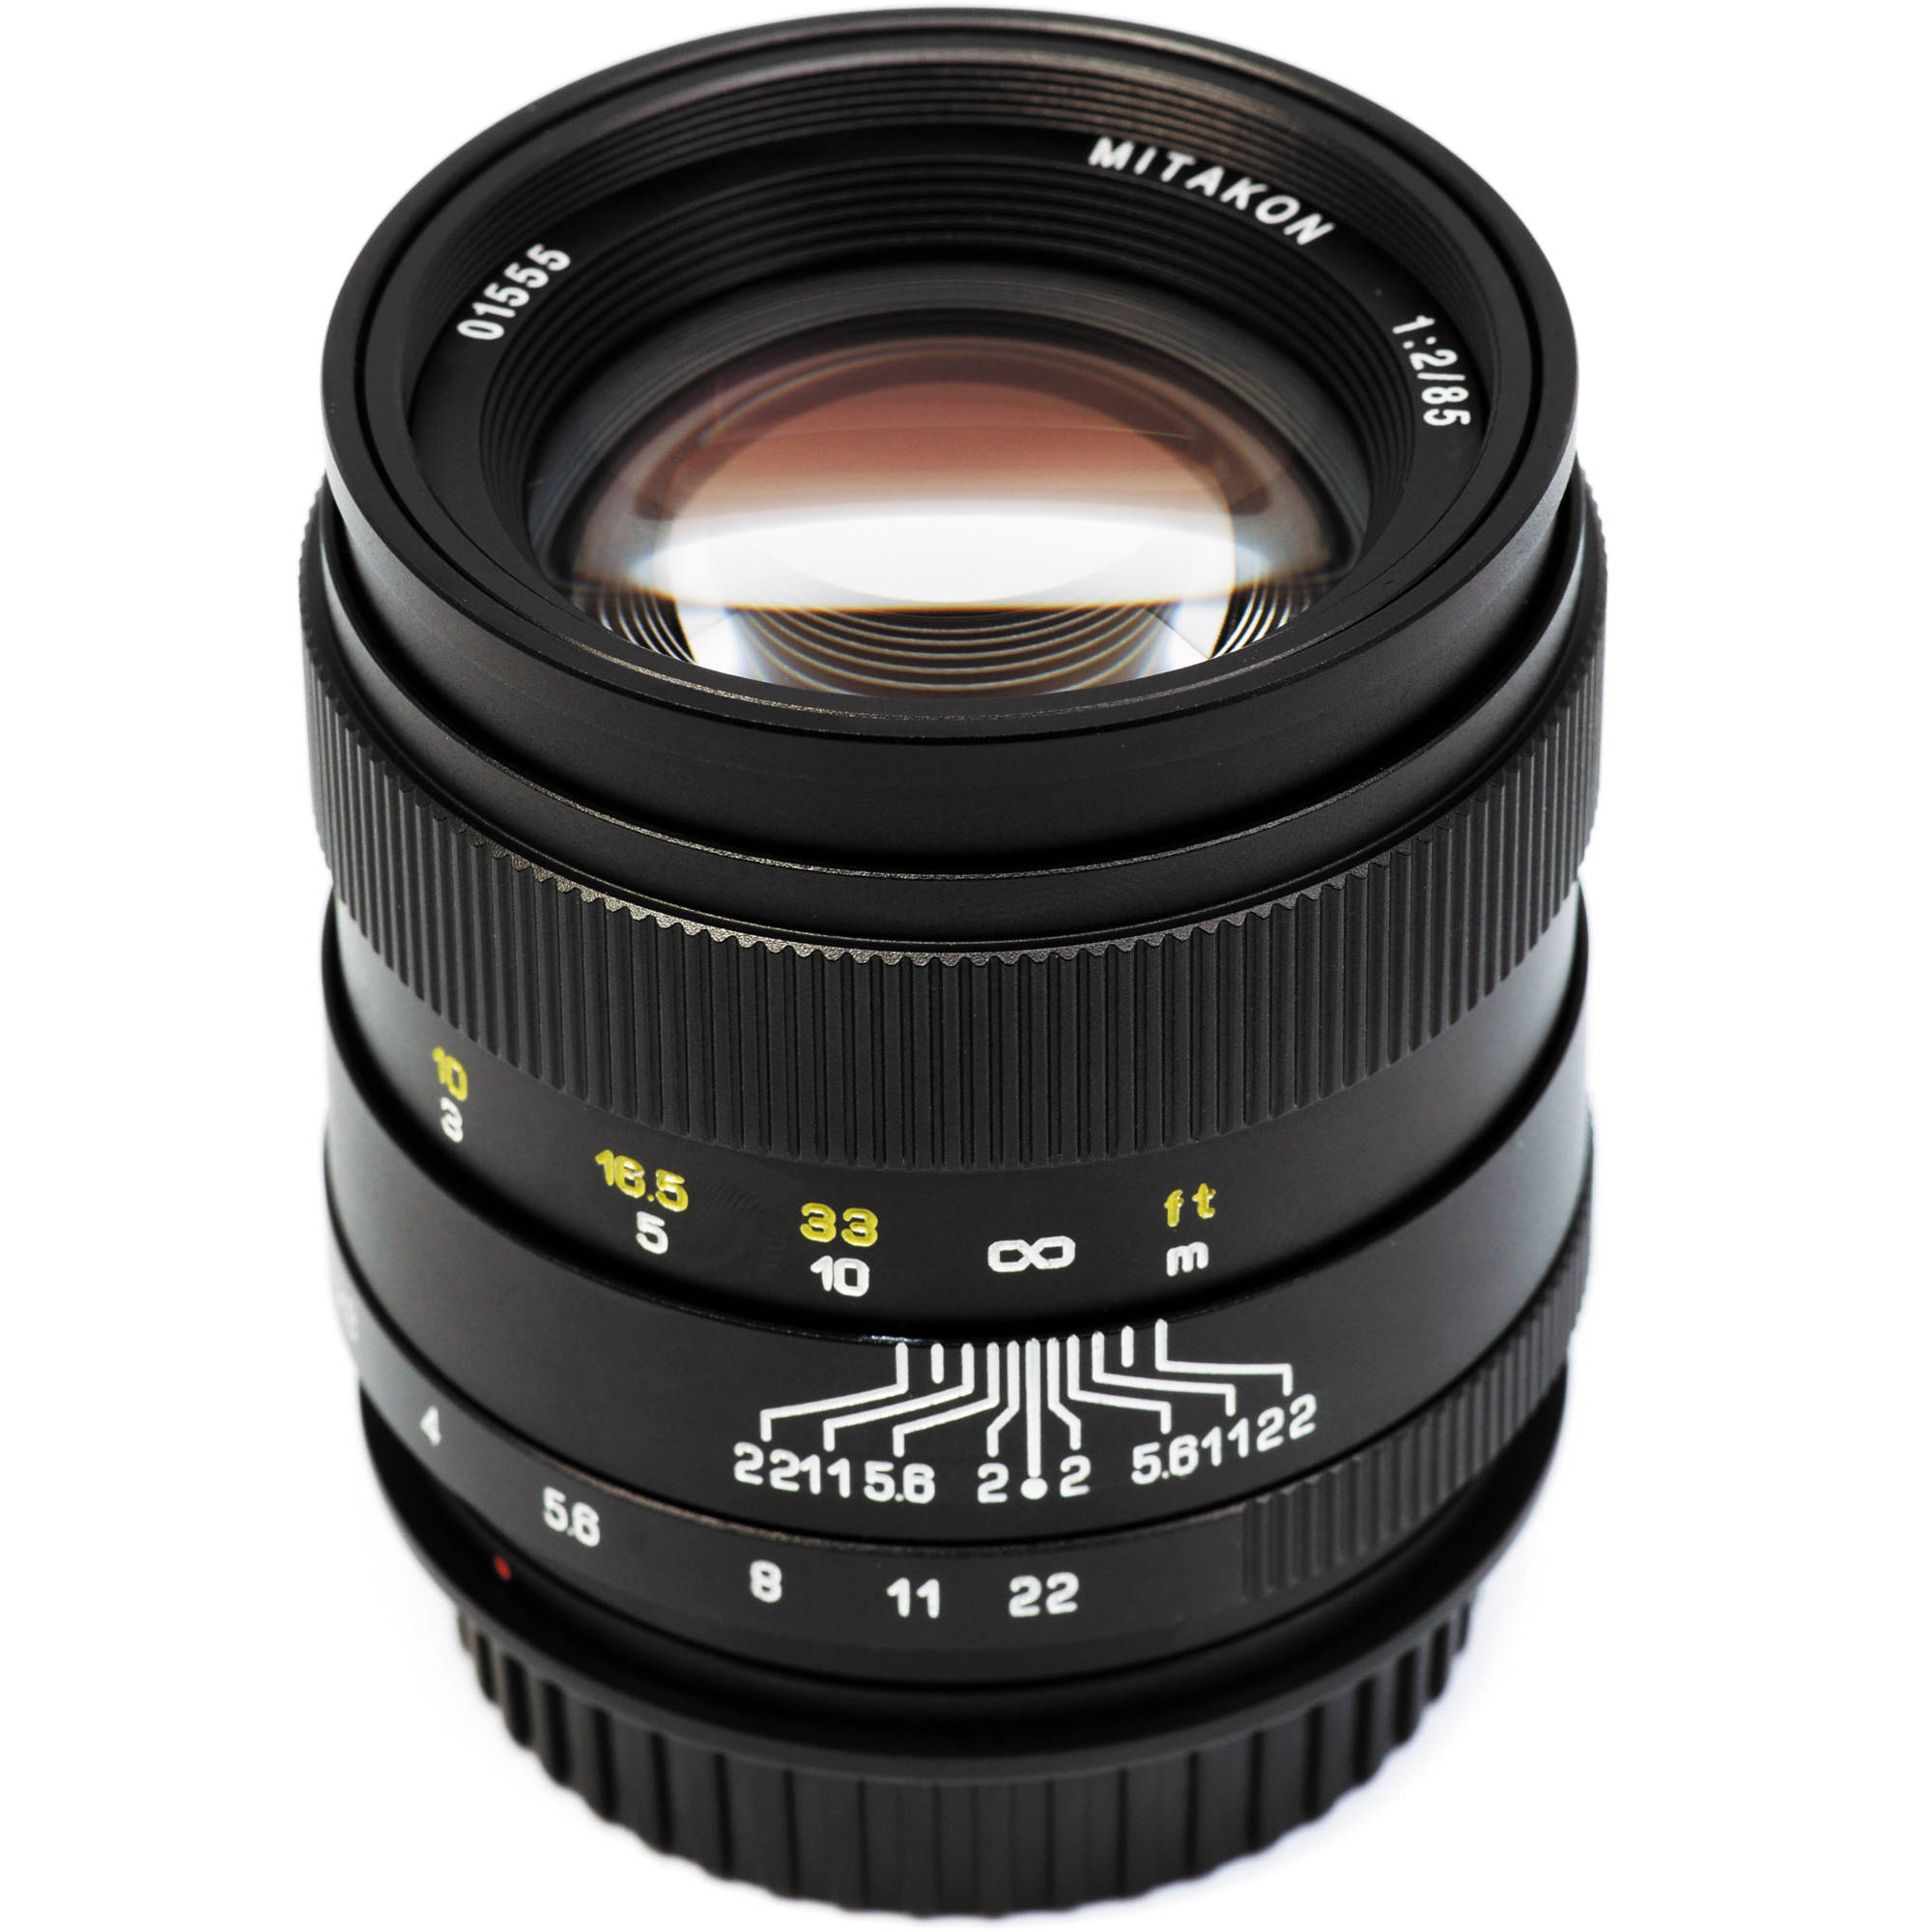 mitakon zhongyi 85mm f 2 lens for pentax k mount mtk85mmbkfpk rh bhphotovideo com pentax manual focus lenses pentax manual lenses list